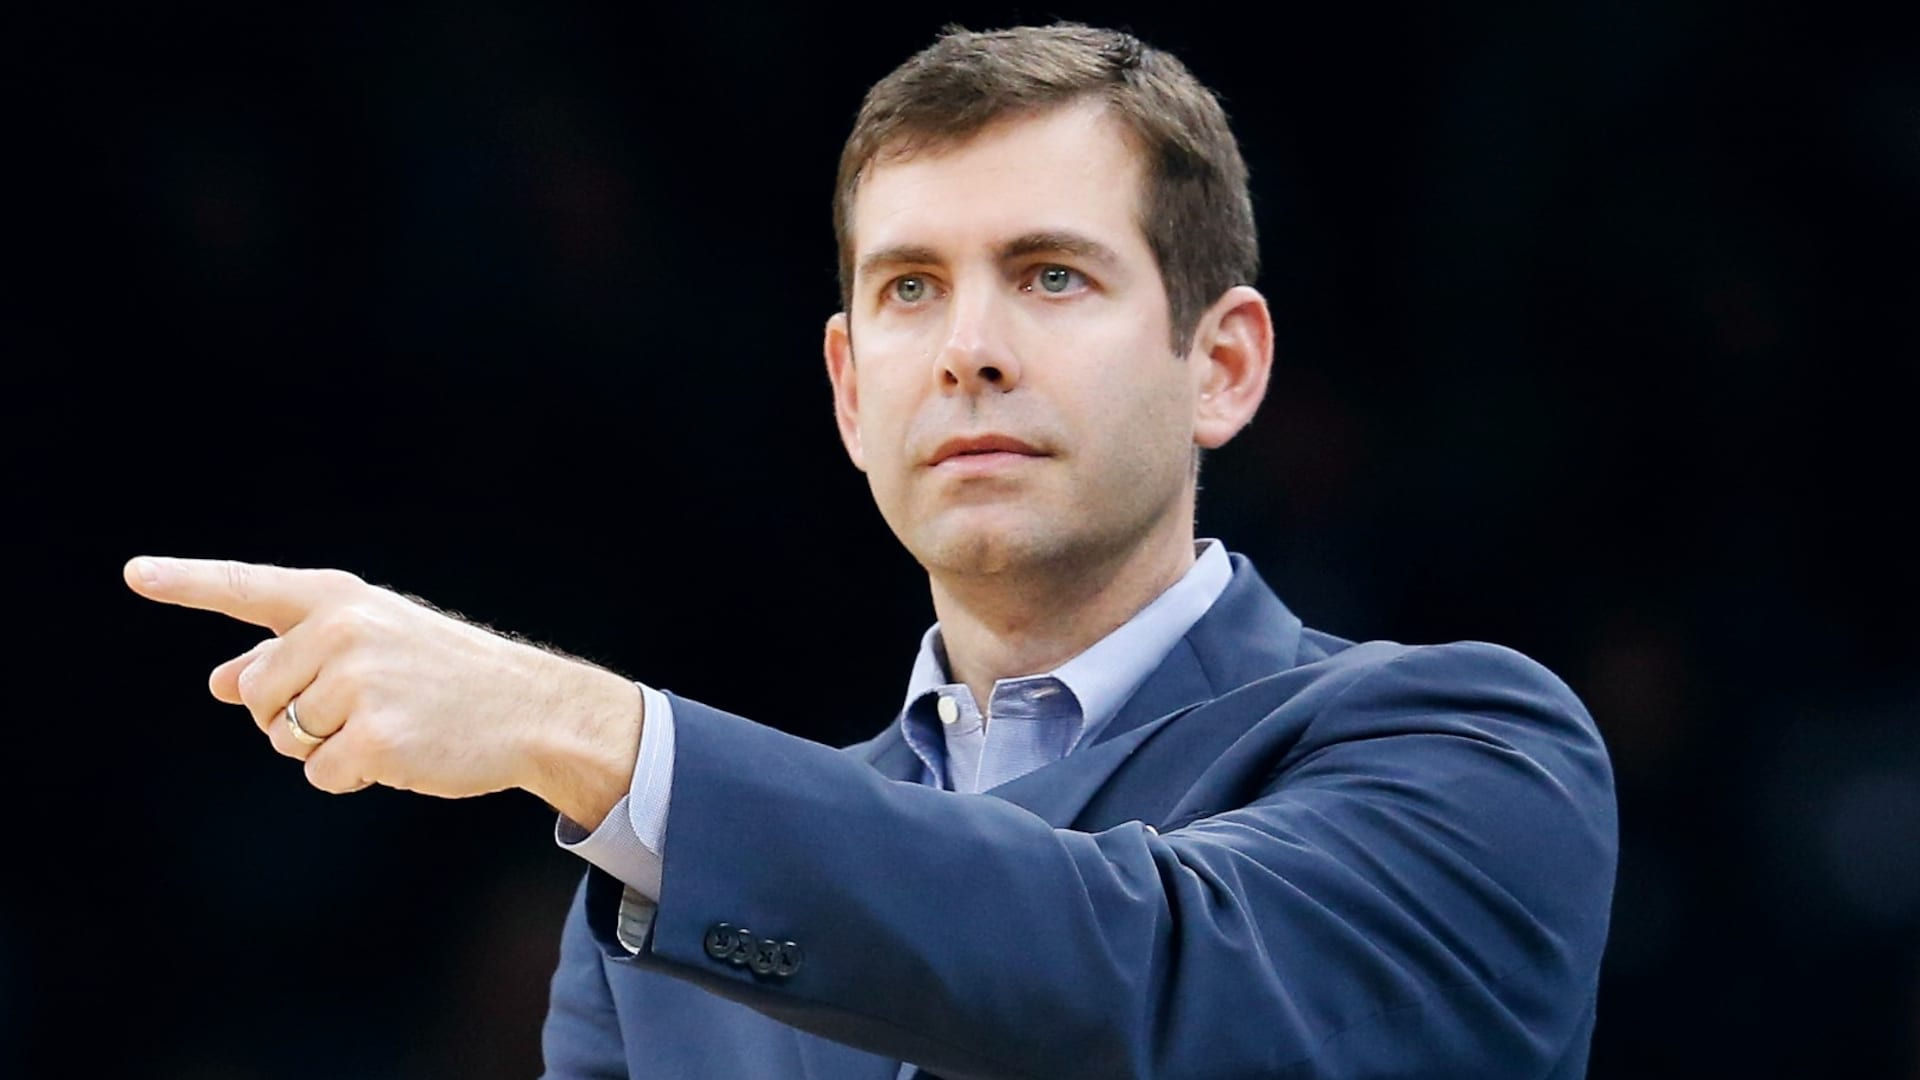 Celtics coach Brad Stevens: Empathy means more than basketball right now